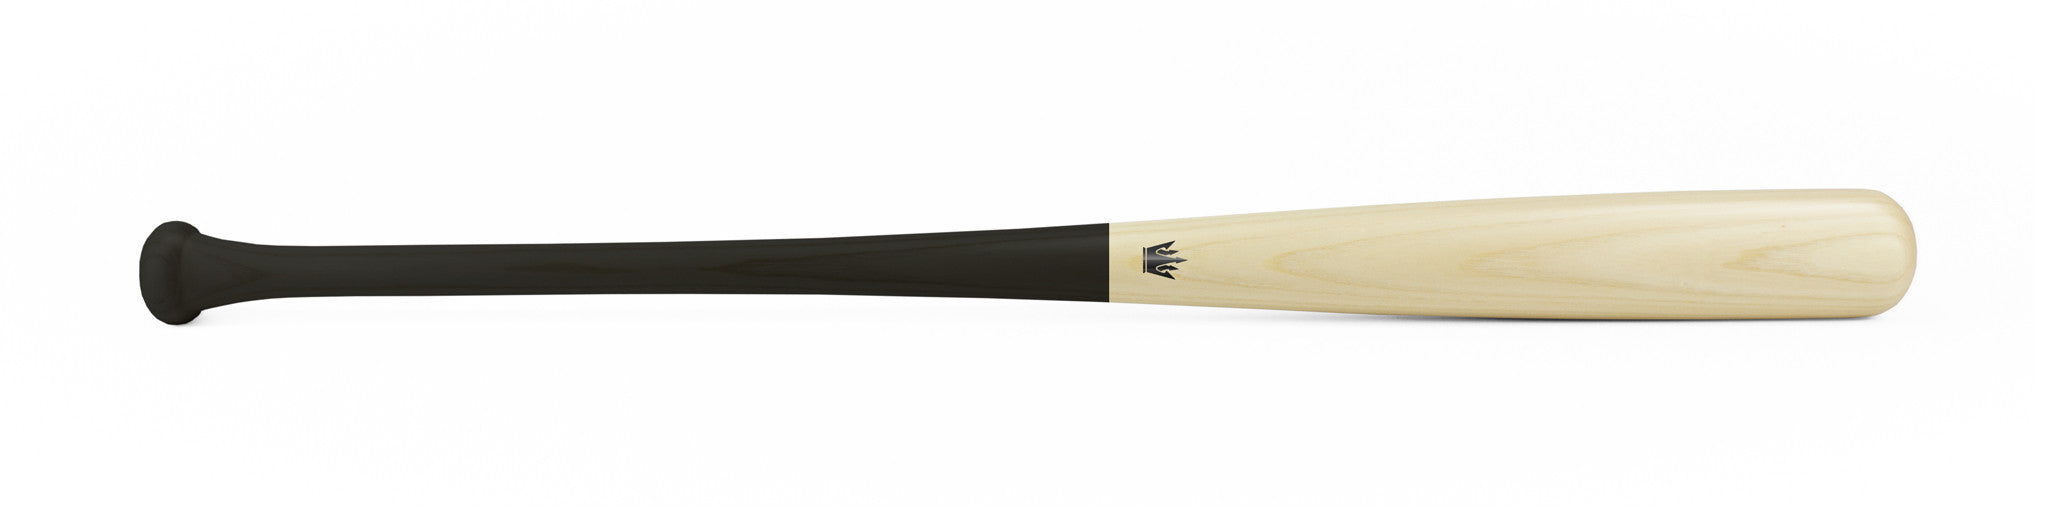 Wood bat - Ash model 110 Black Dip - 27